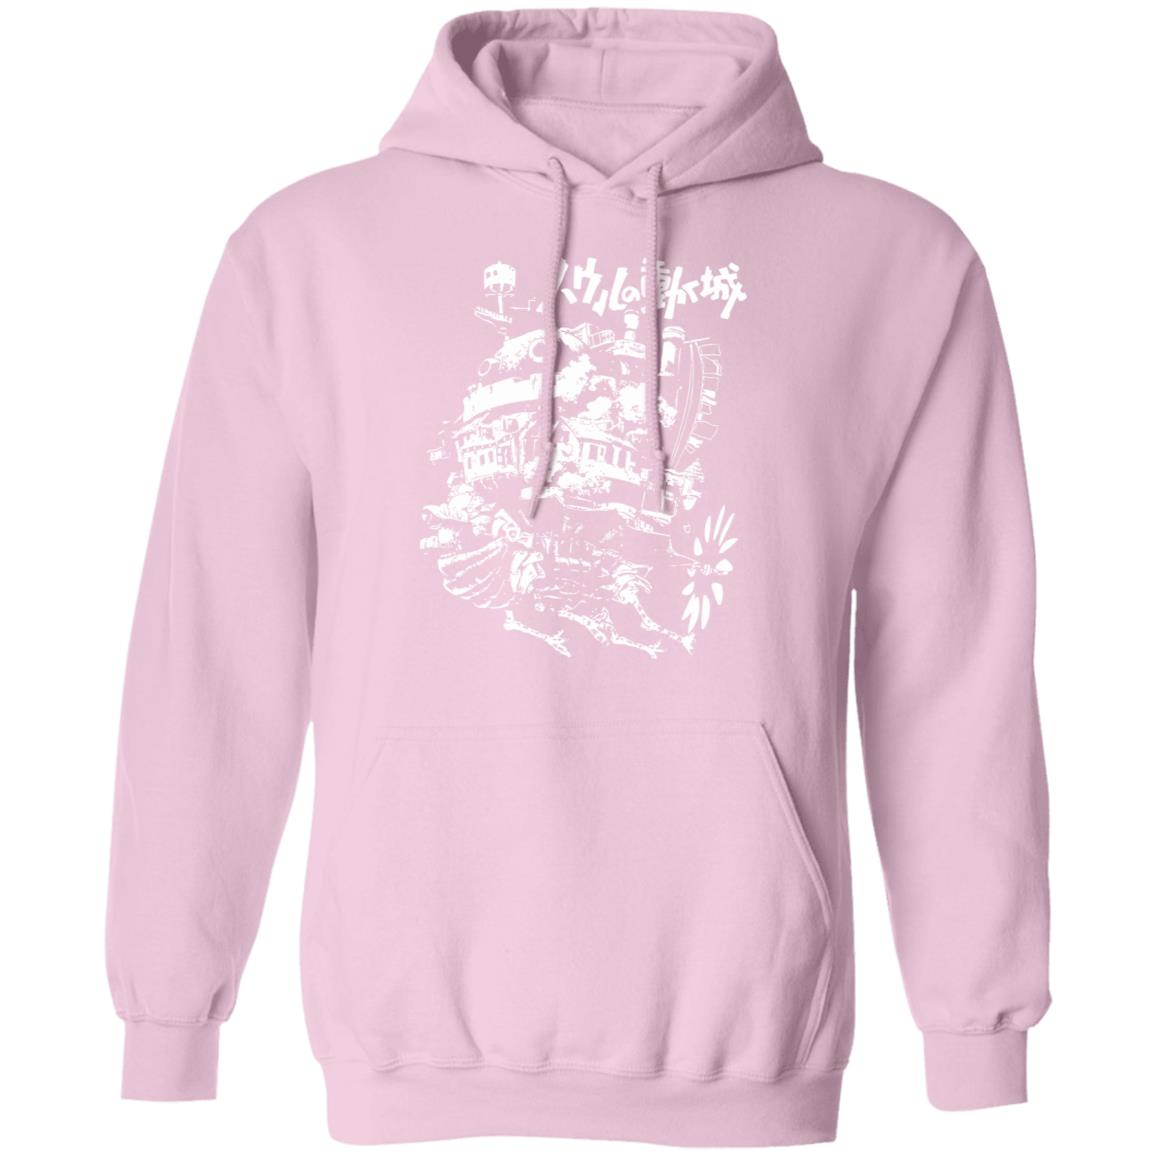 Howl's Castle in Black and White Hoodie